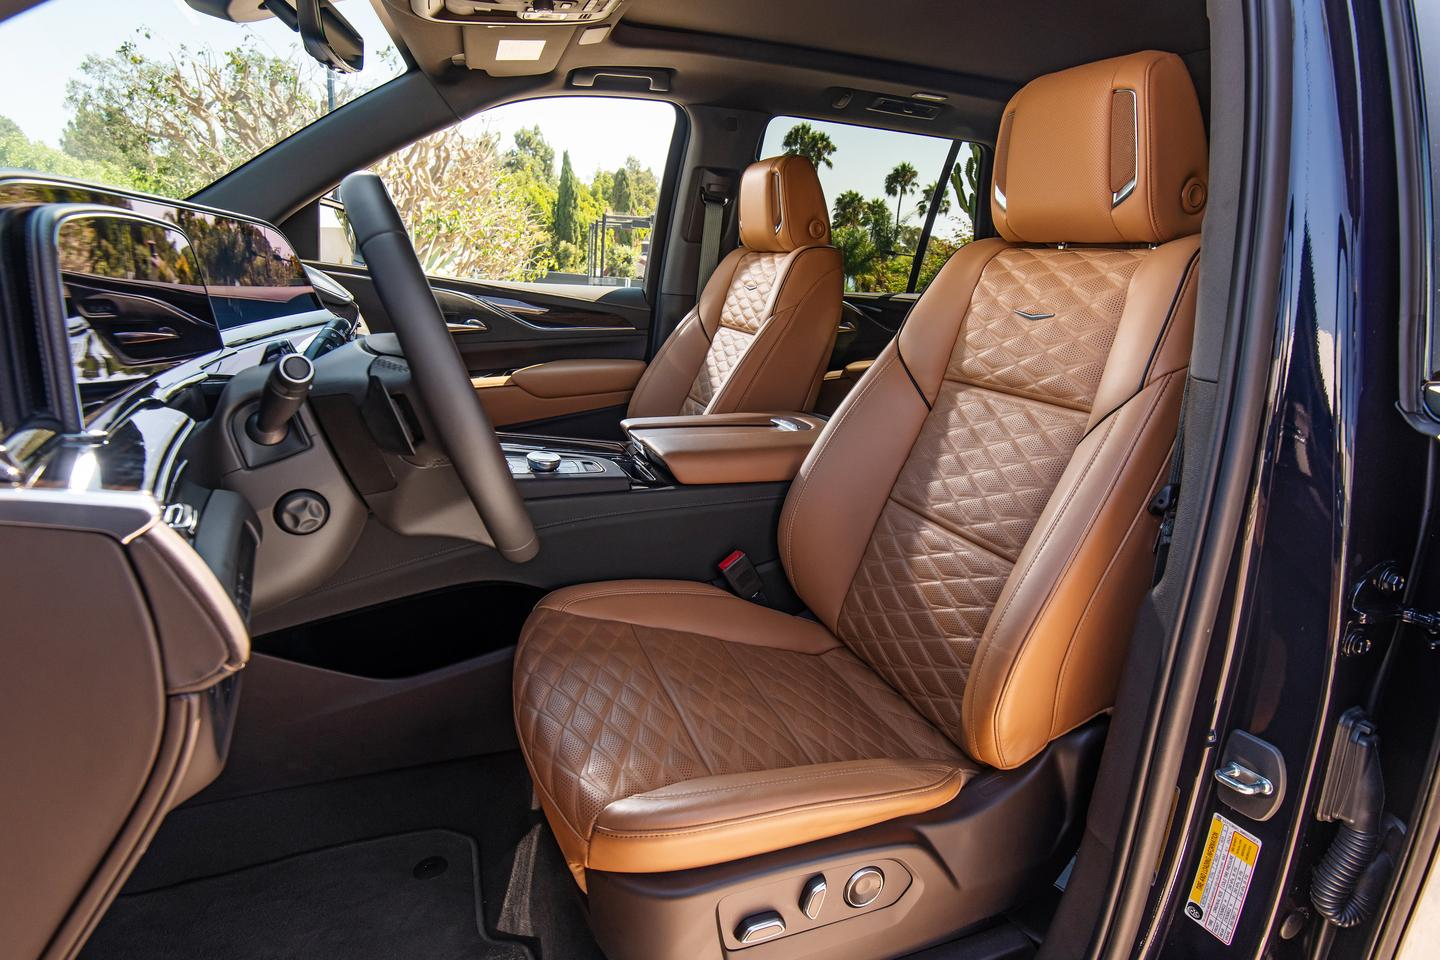 Luxury materials in the 2021 Cadillac Escalade are augmented by ergonomic touches to make the cabin more livable and usable